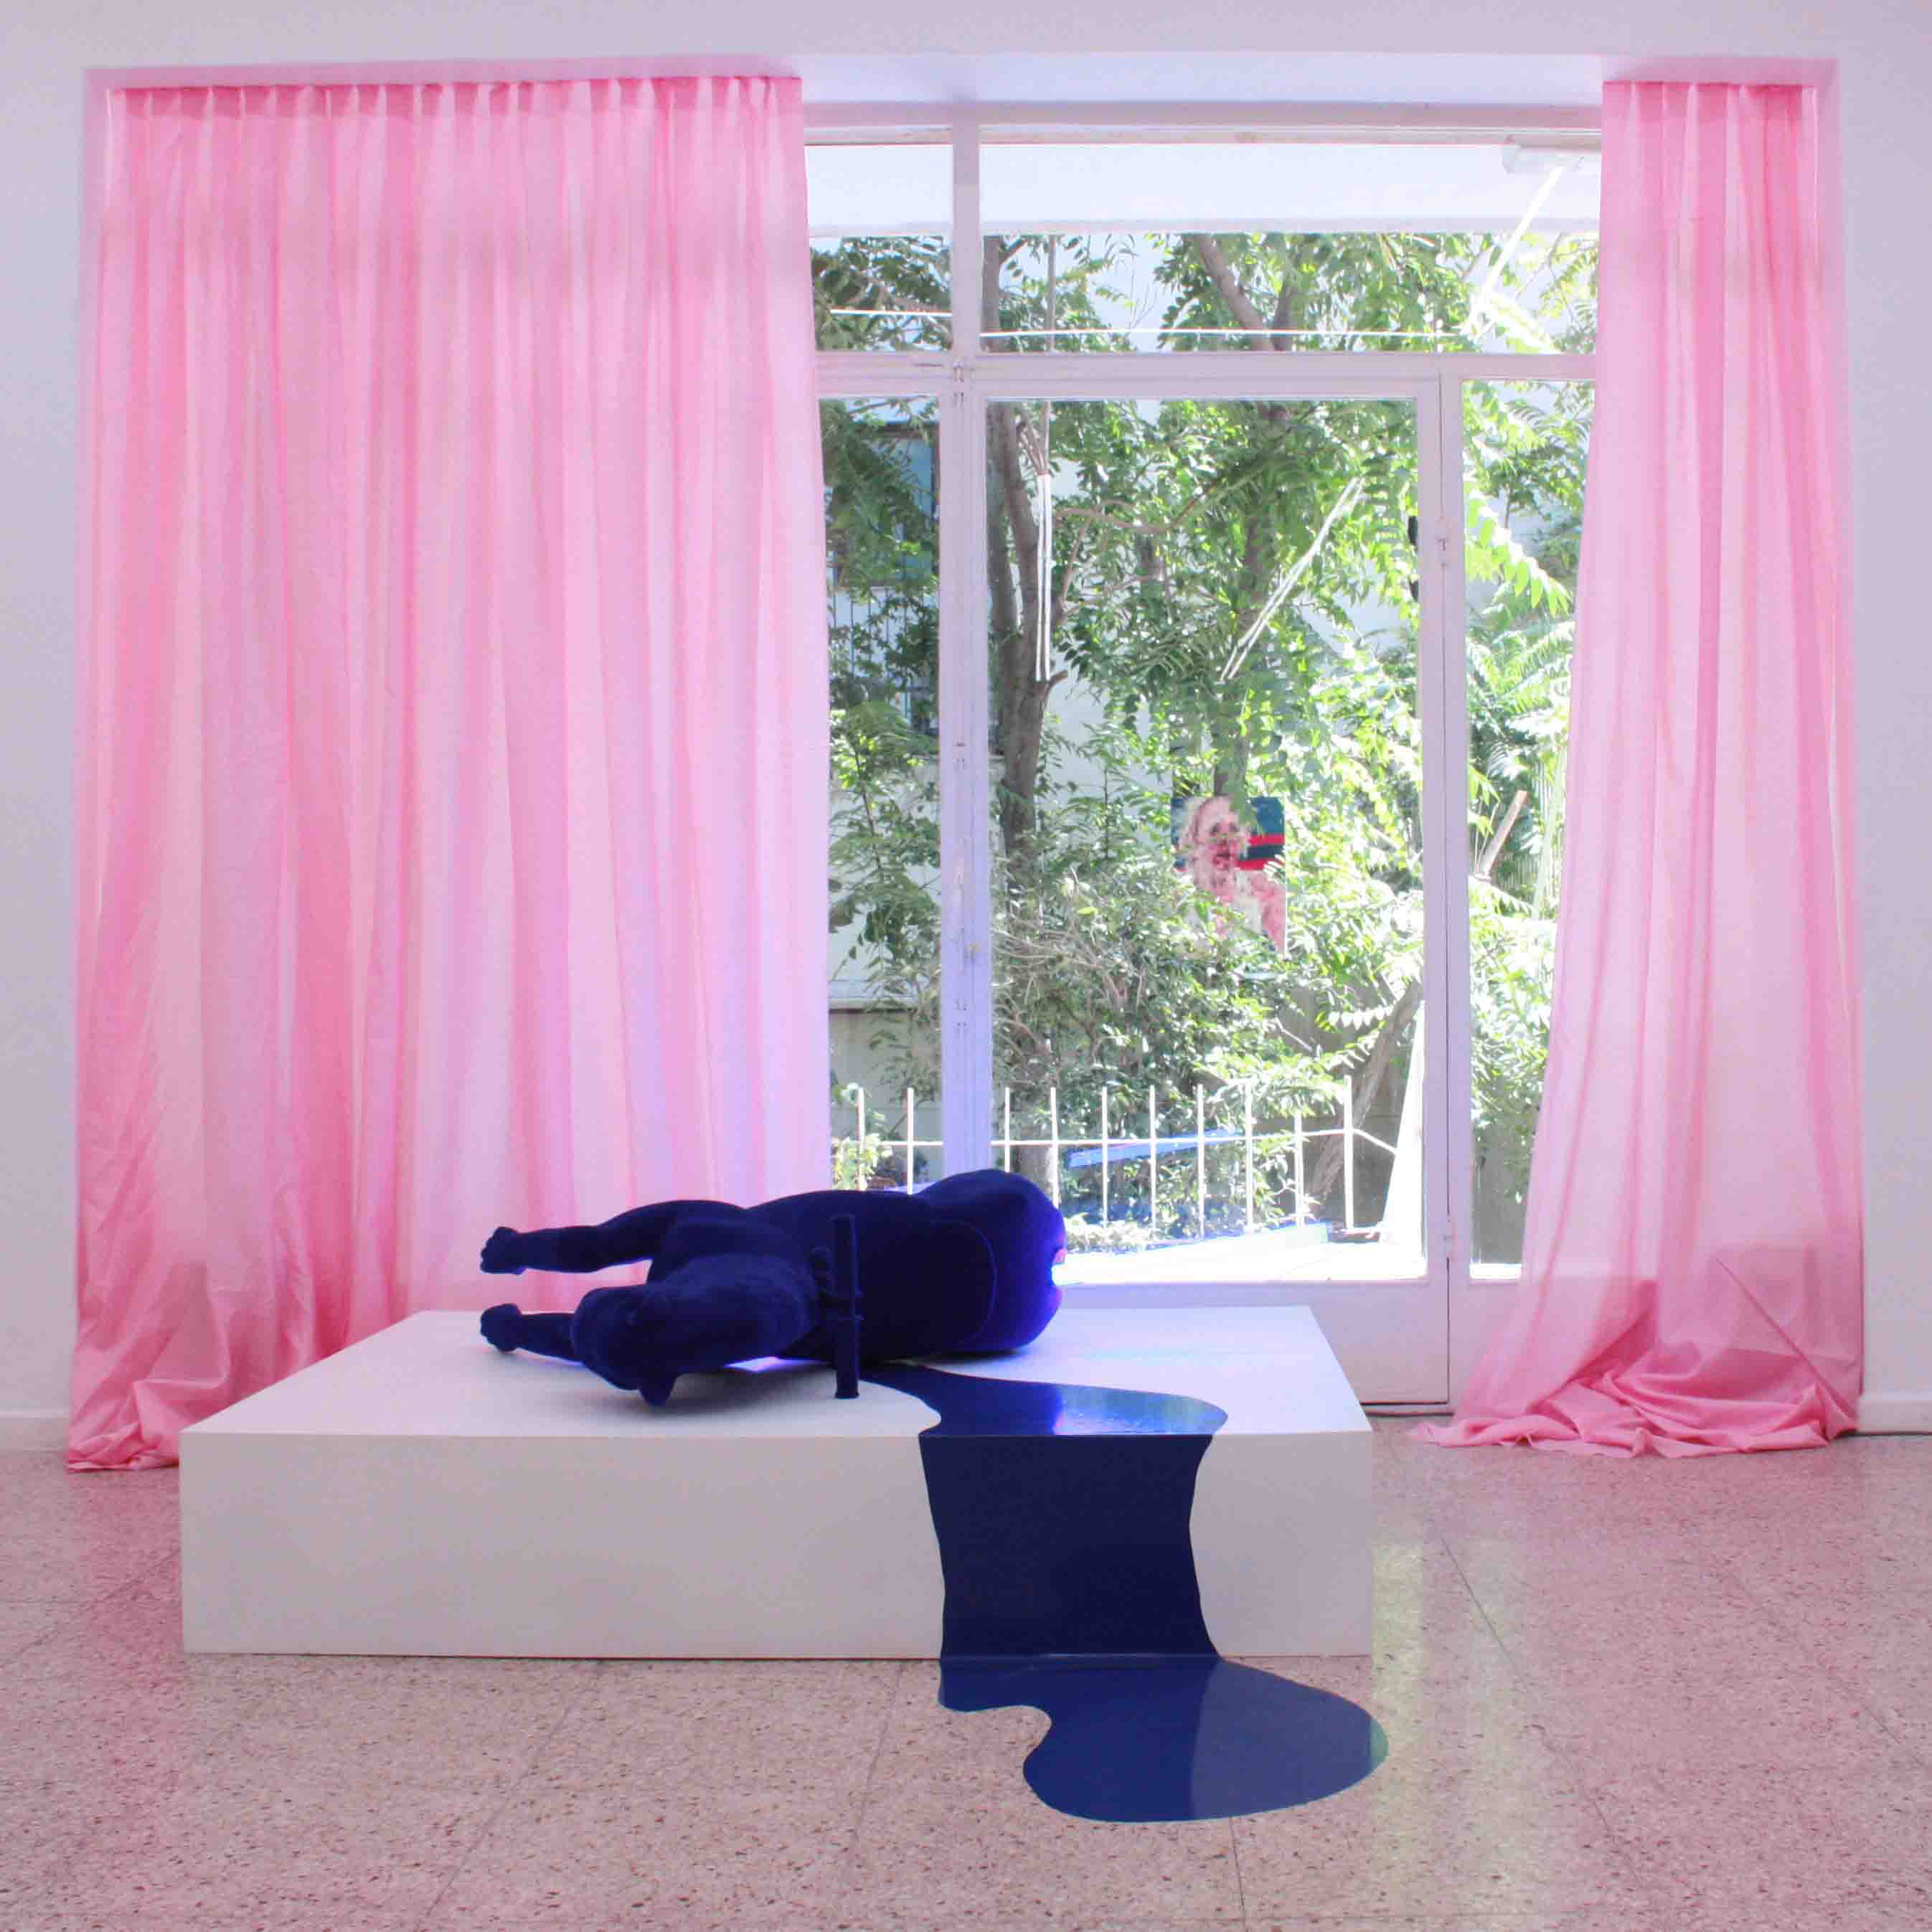 Untitled, 2018, Curtain, coined operated velvet hourse, neon & sticker, 160 x 54 x 120 cm